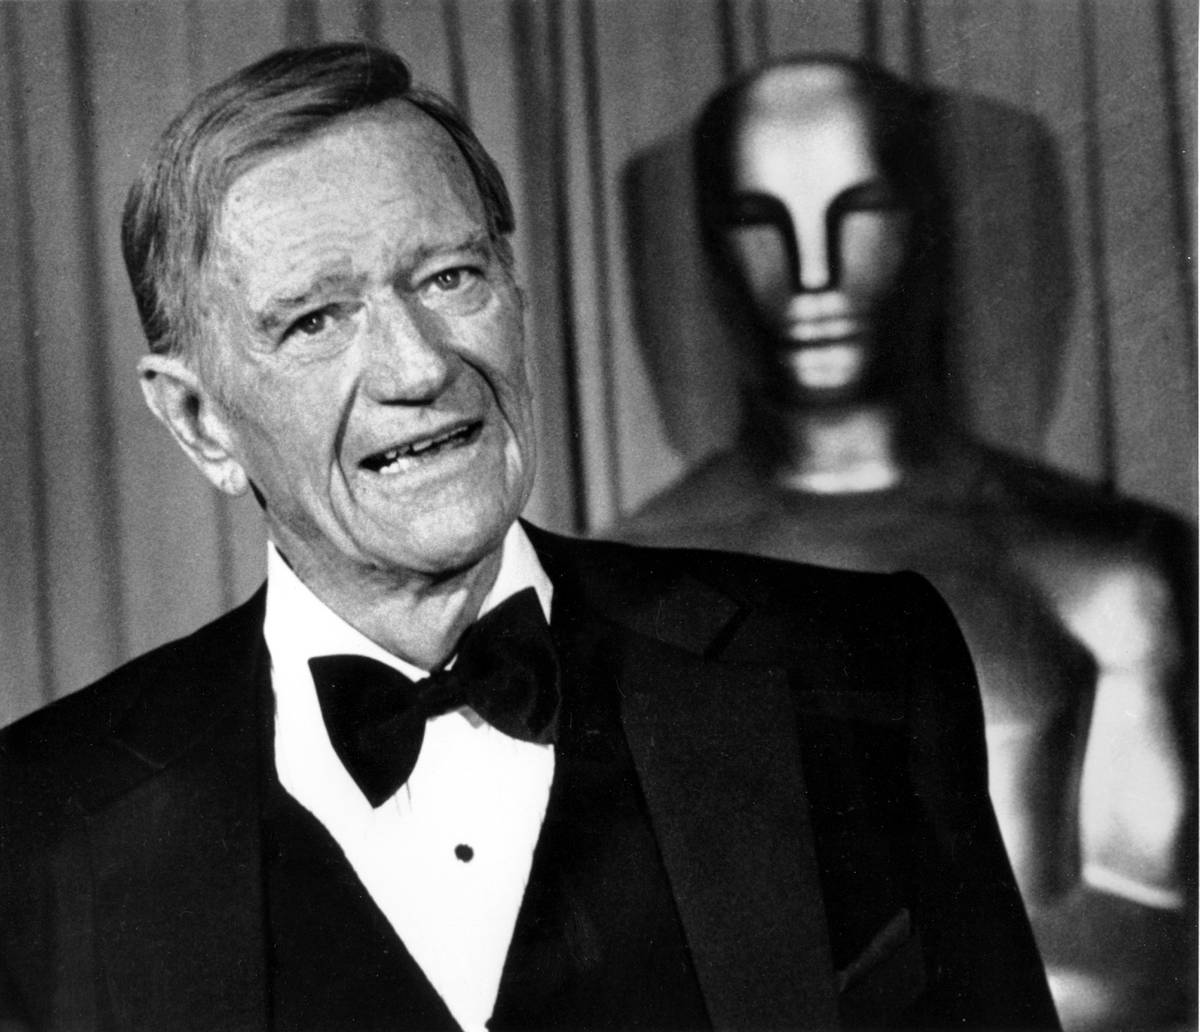 Actor John Wayne is shown at the 51st Annual Academy Awards in Hollywood, Ca. on April 9, 1979. ...